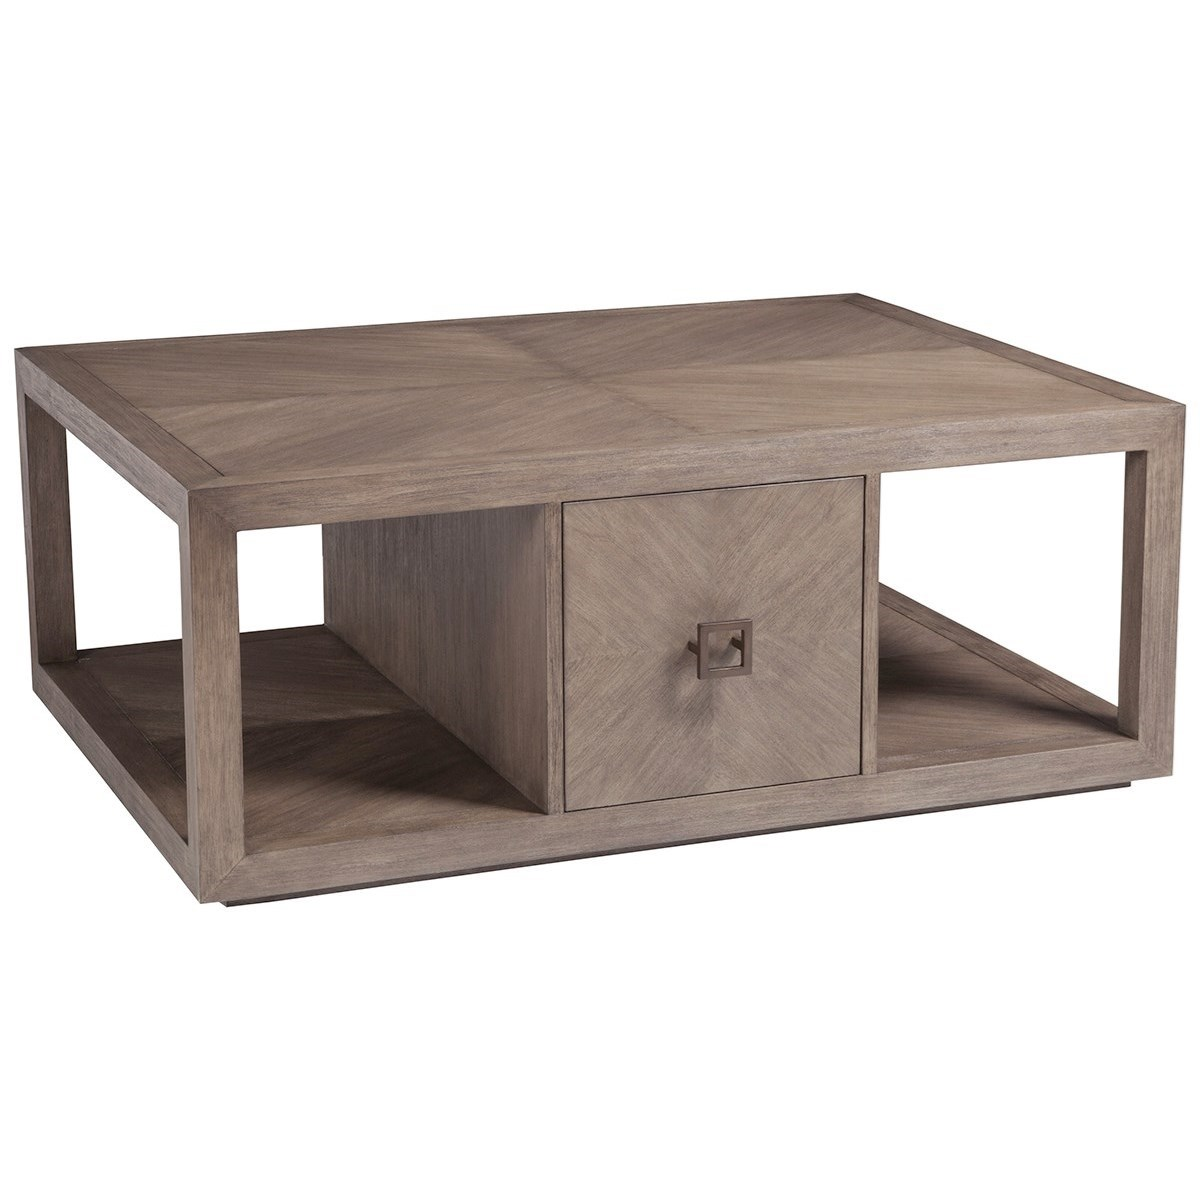 Cohesion Credence Rectangular Cocktail Table by Artistica at Baer's Furniture